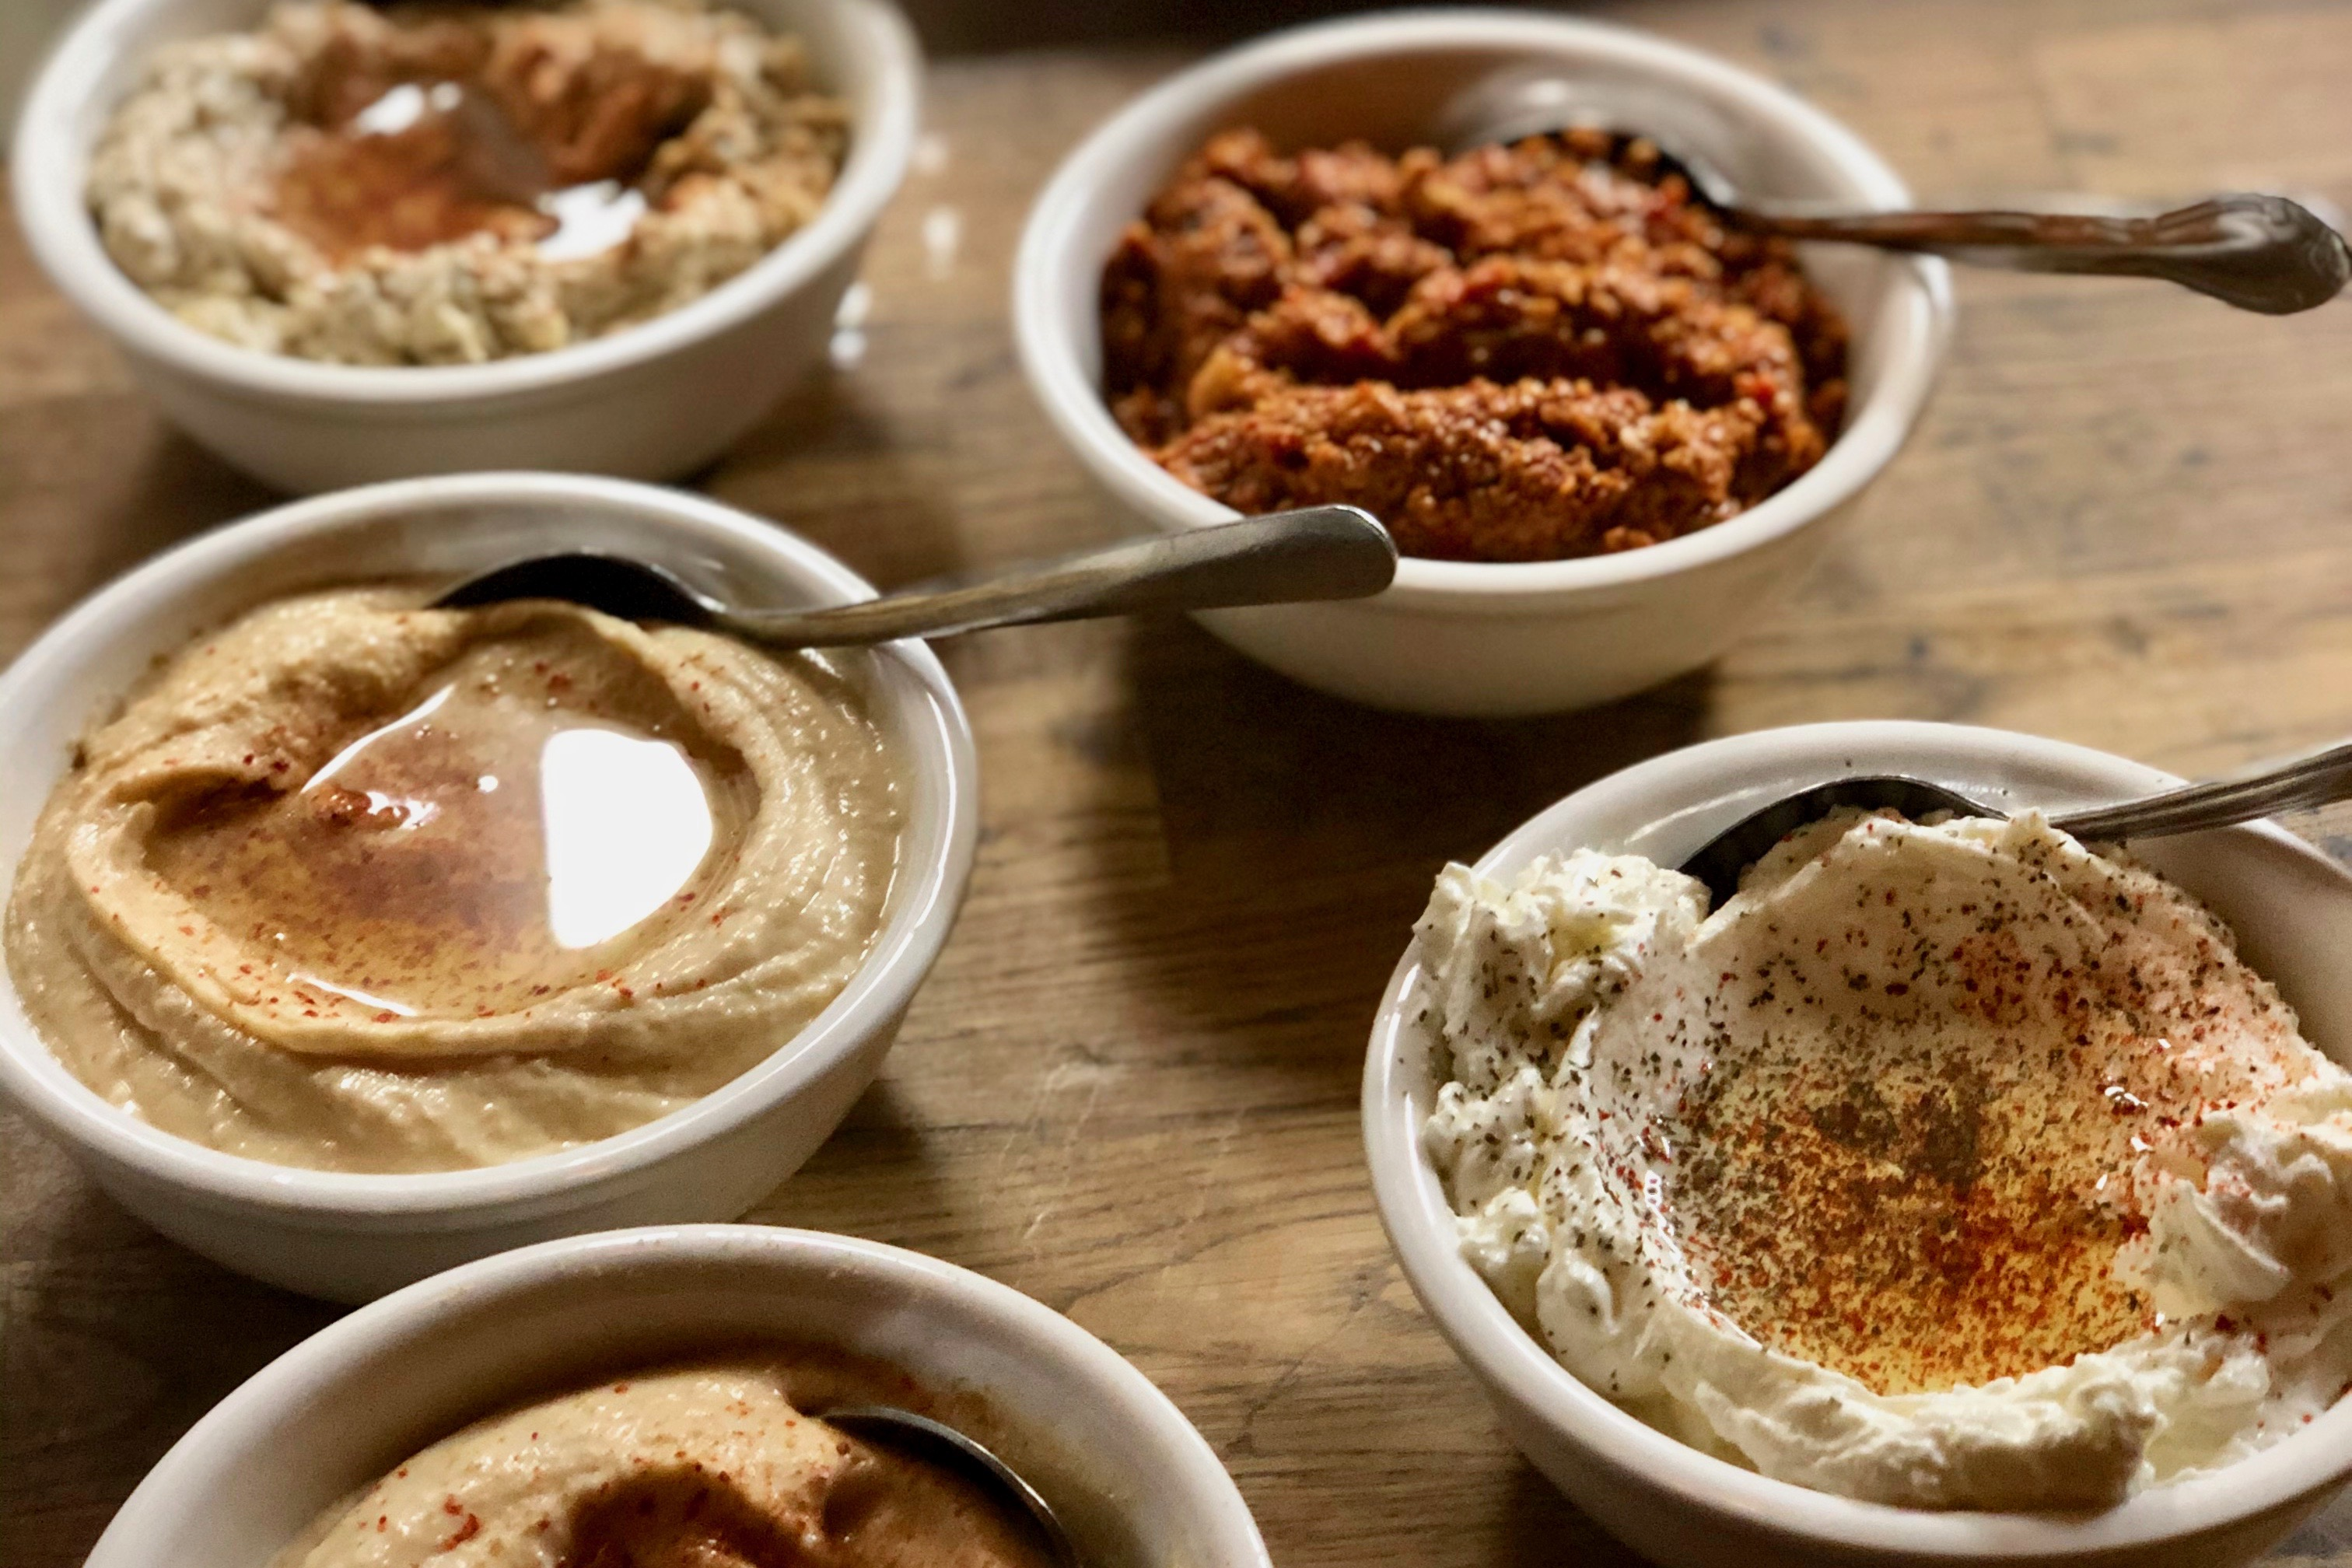 several small bowls of middle eastern dips